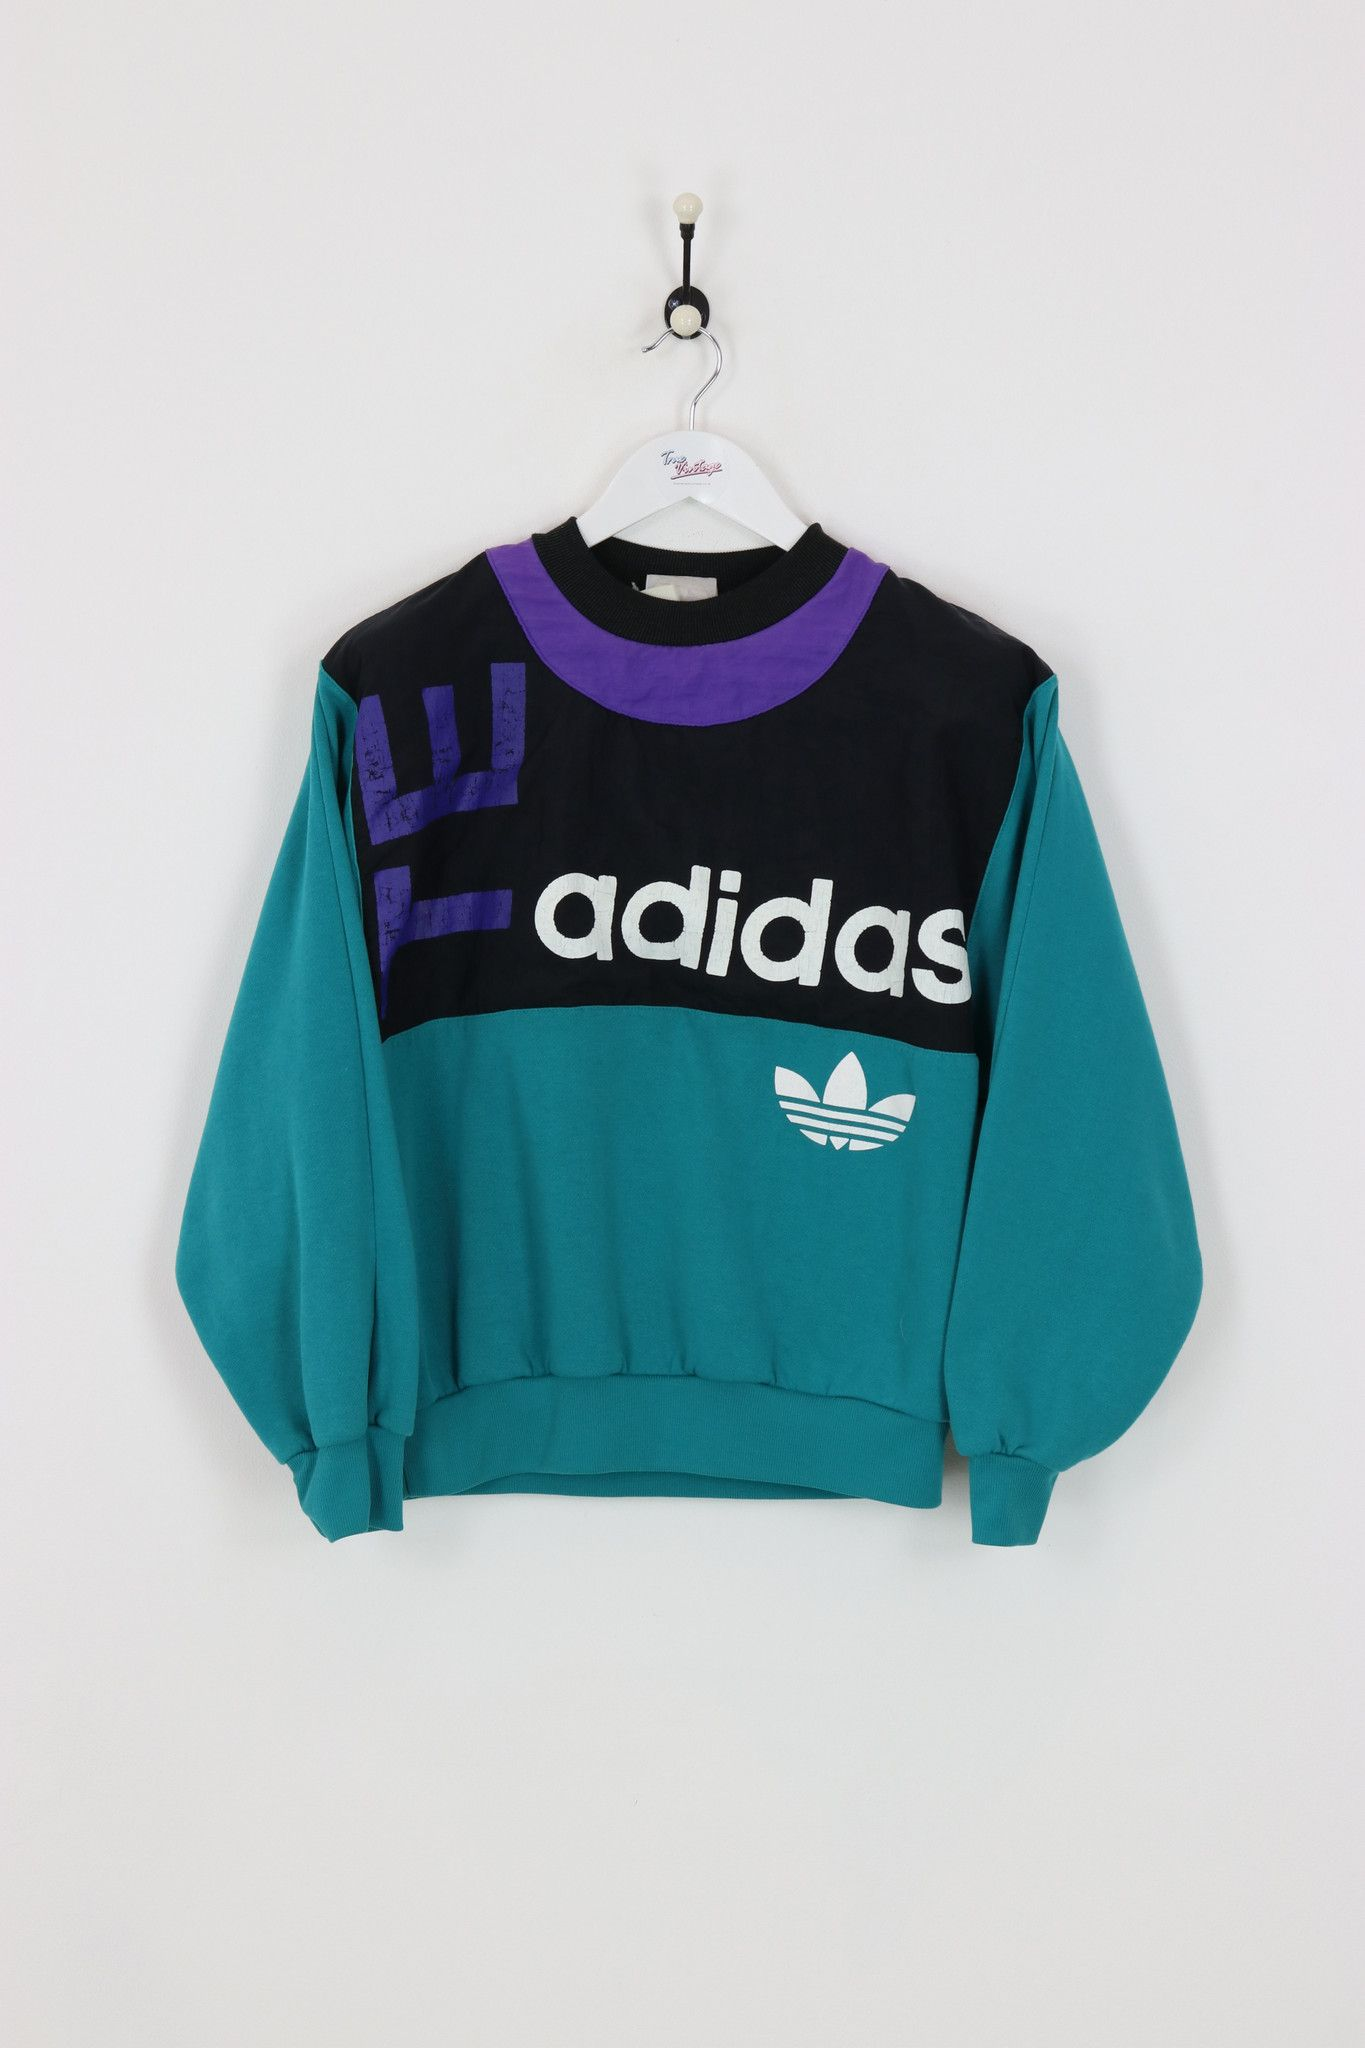 Very good condition, vintage Adidas sweatshirt. Measurements